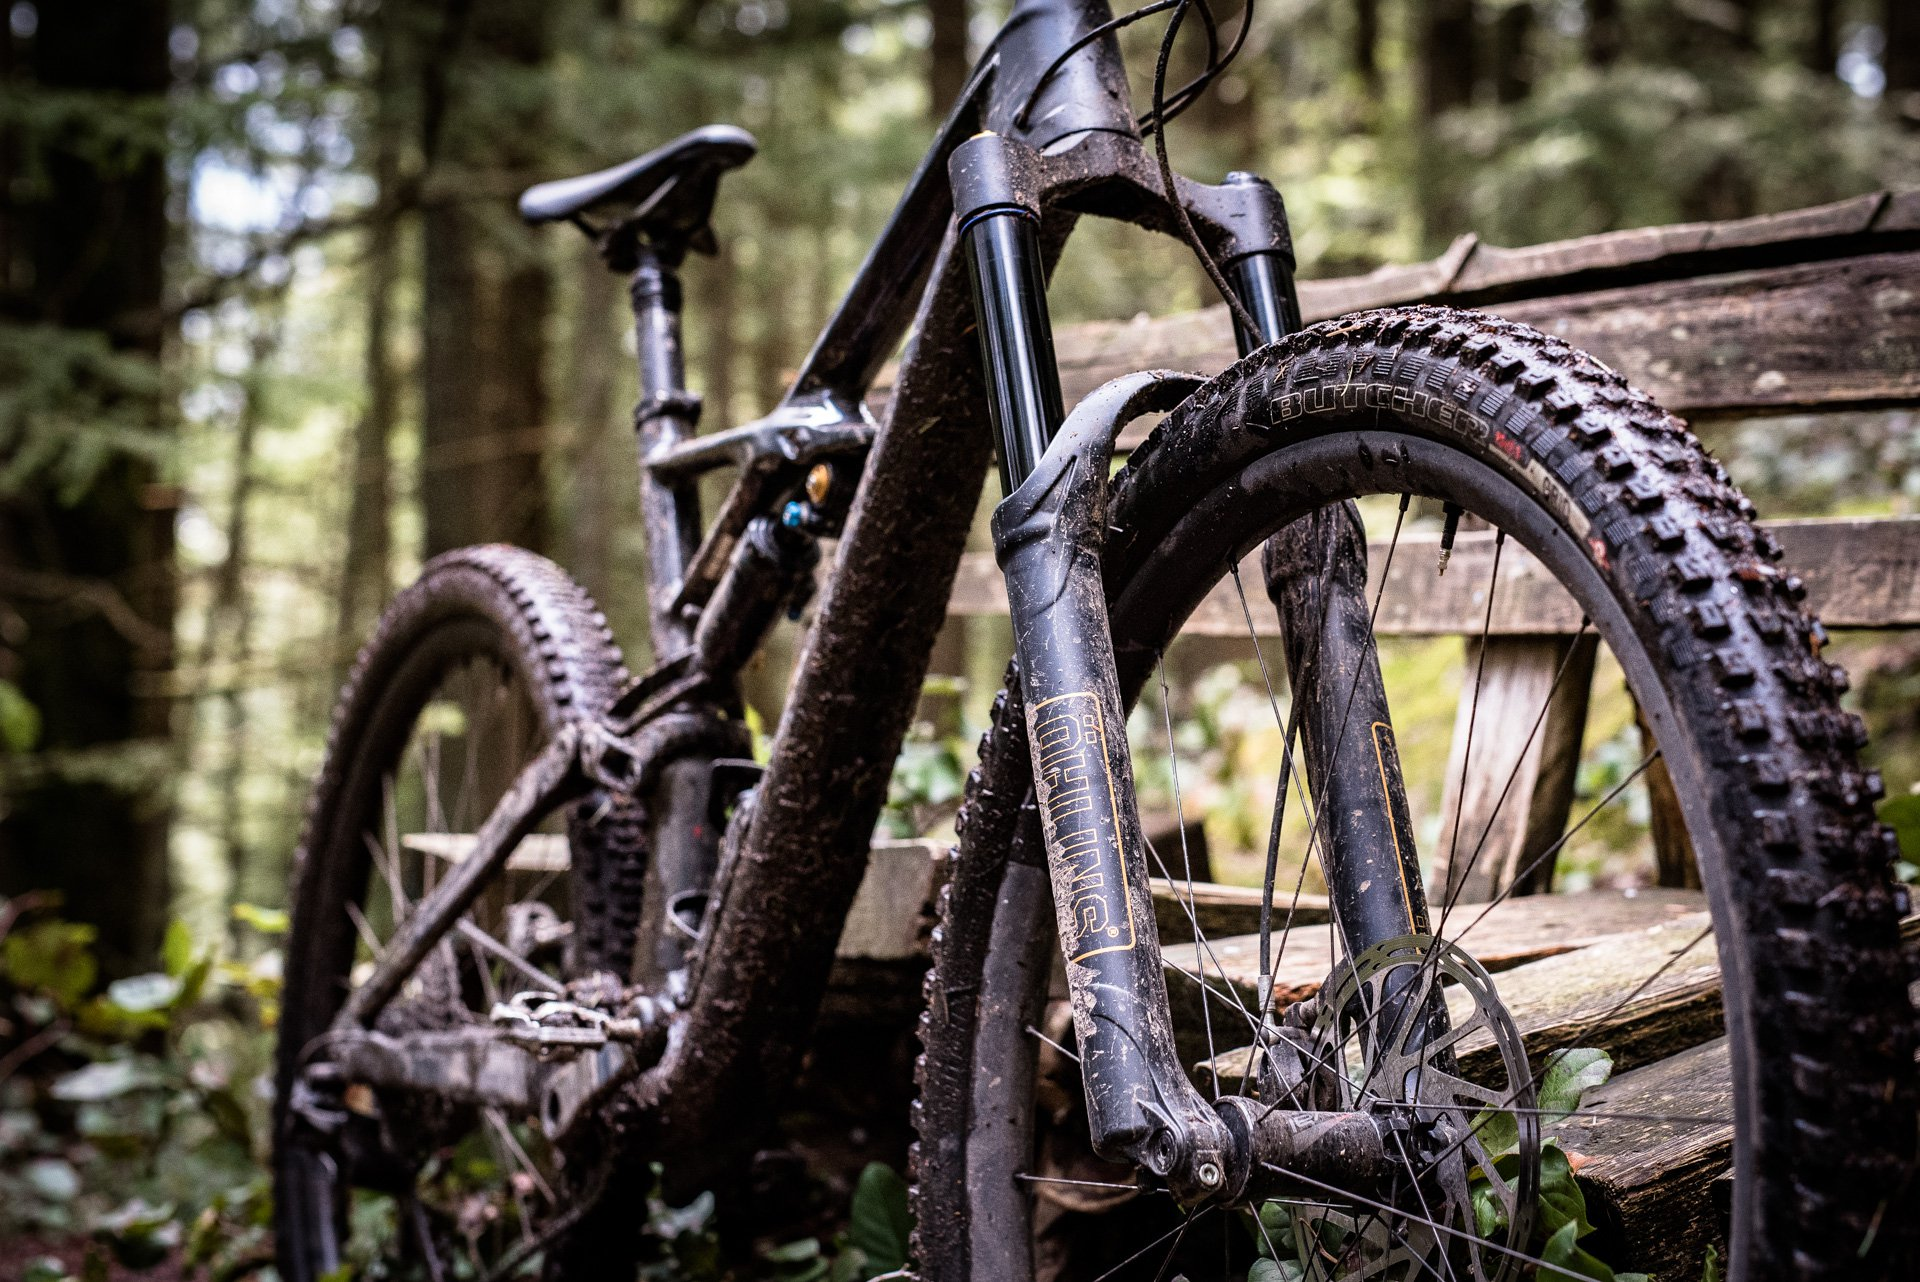 nsmb_2017_geareview_specialized_enduro29_PerrySchebel-7882.jpg